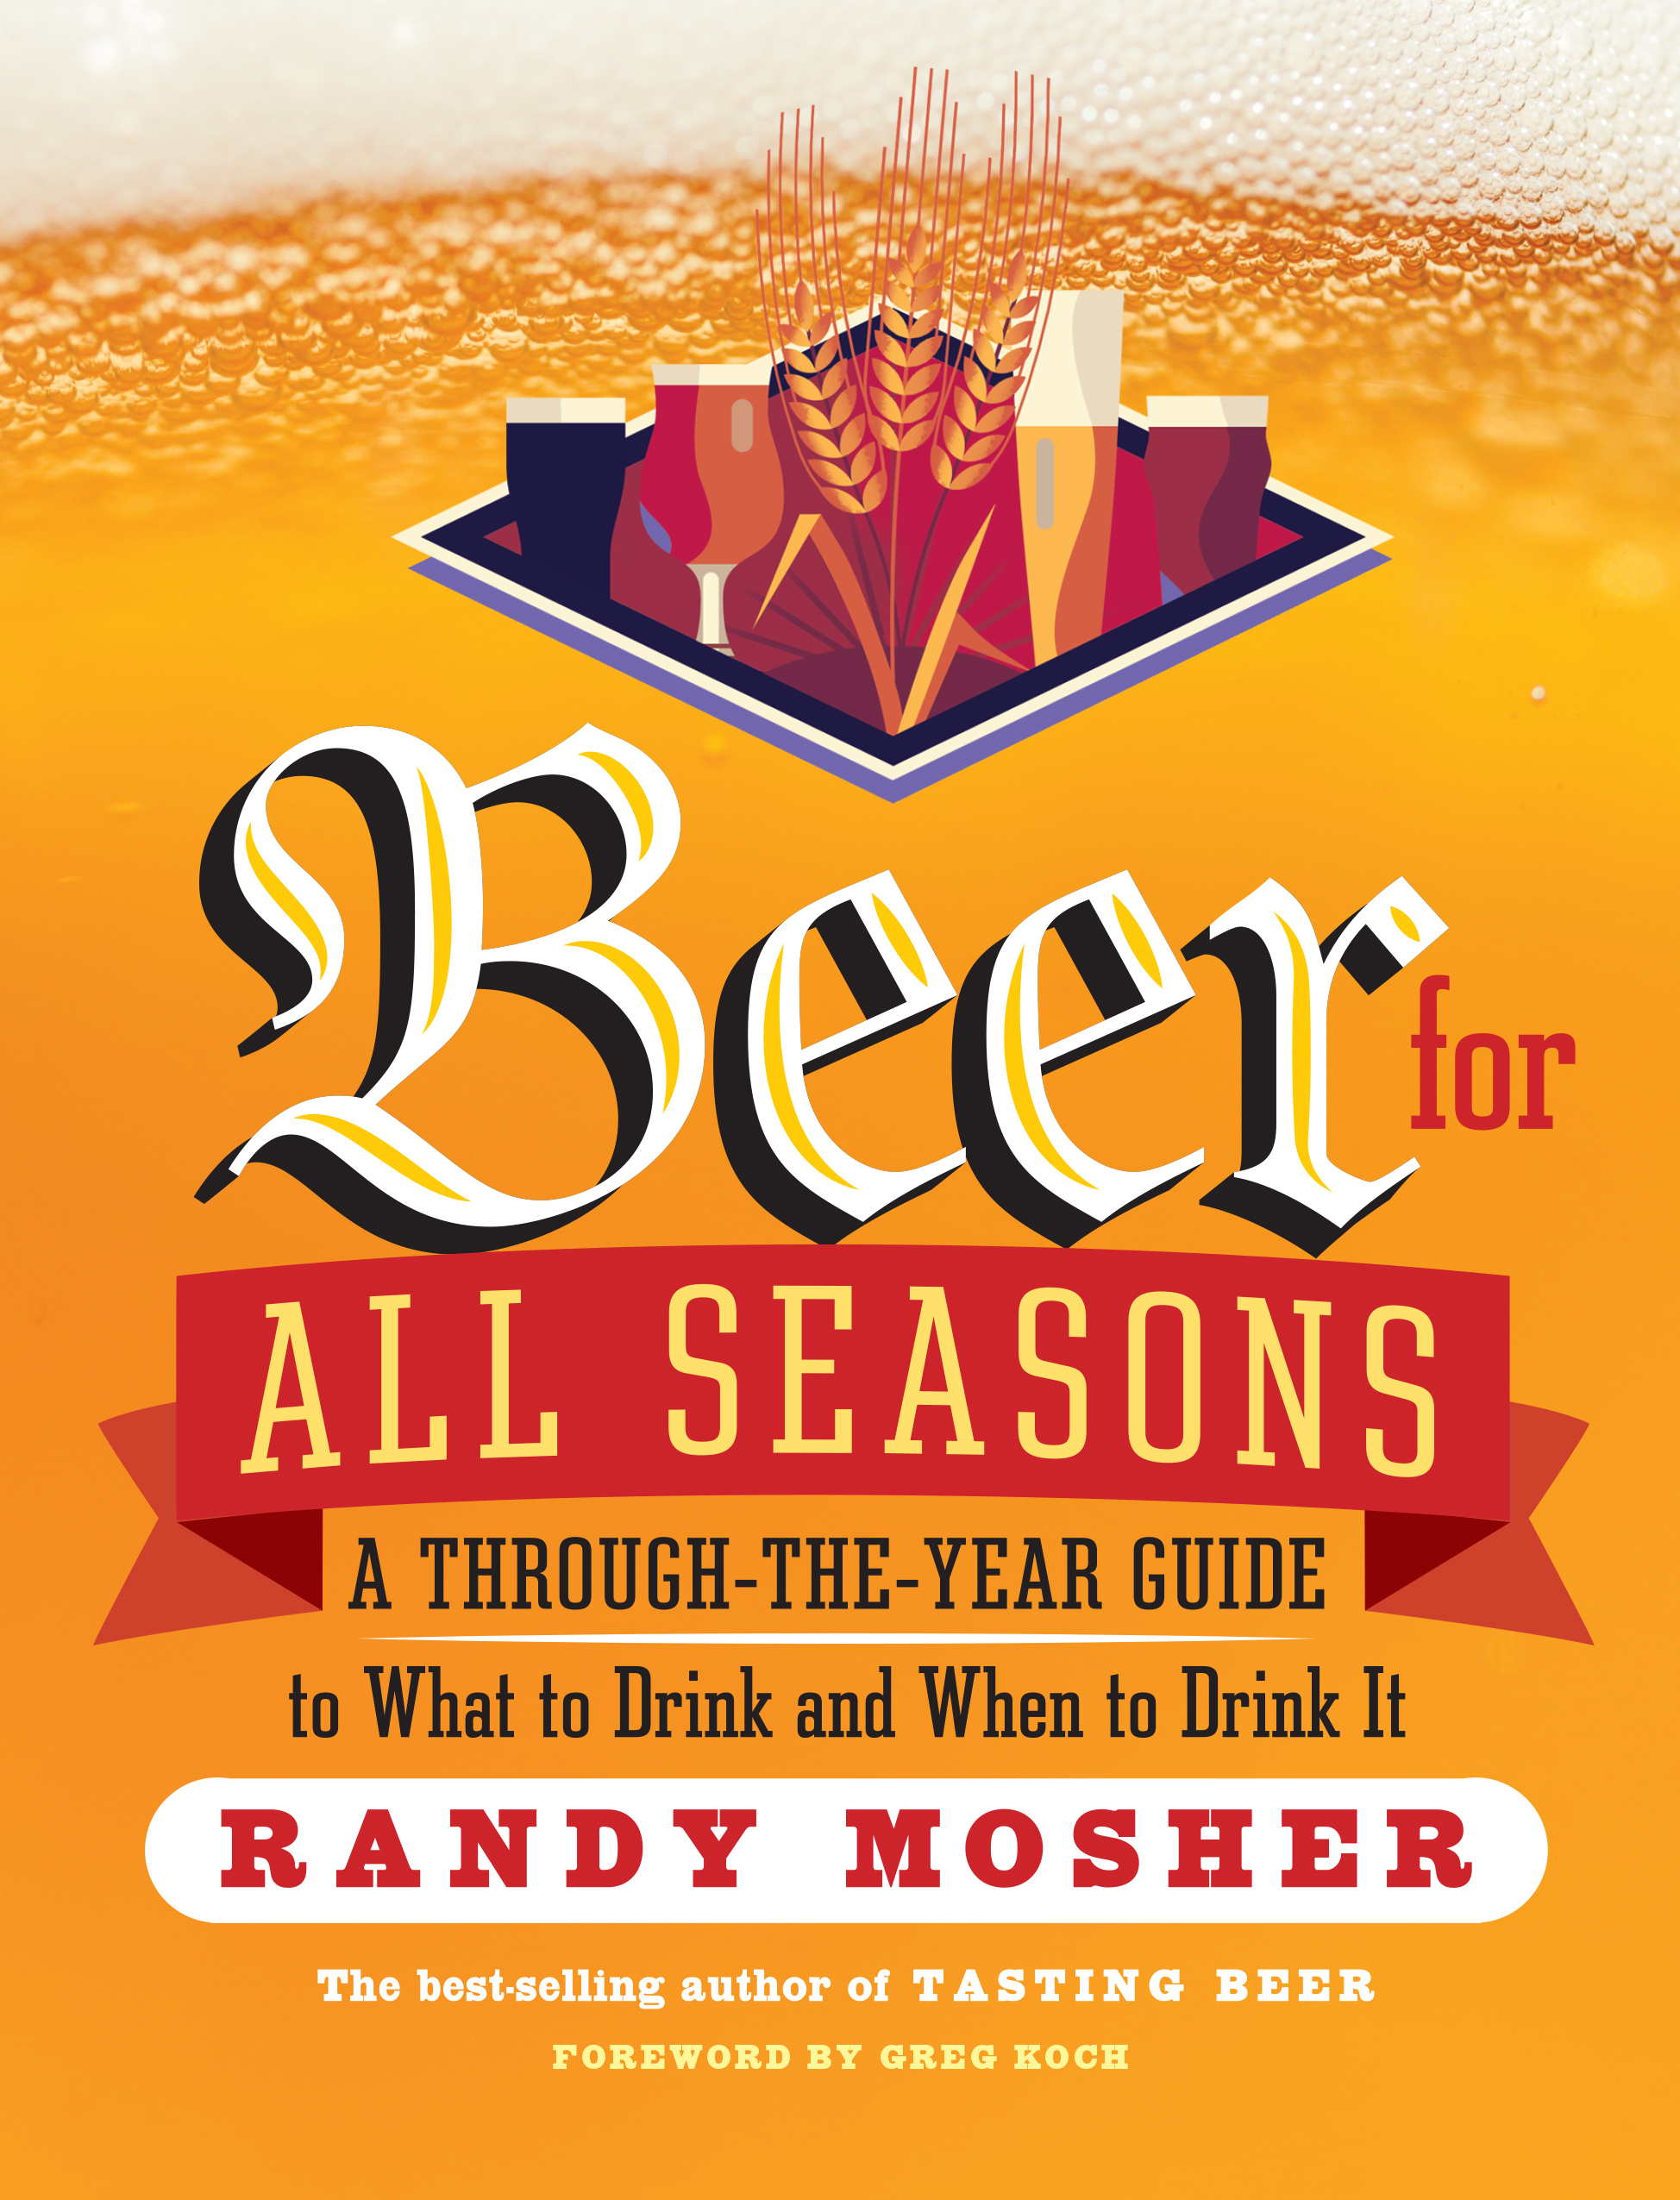 Beer for All Seasons A Through-the-Year Guide to What to Drink and When to Drink It - Randy Mosher